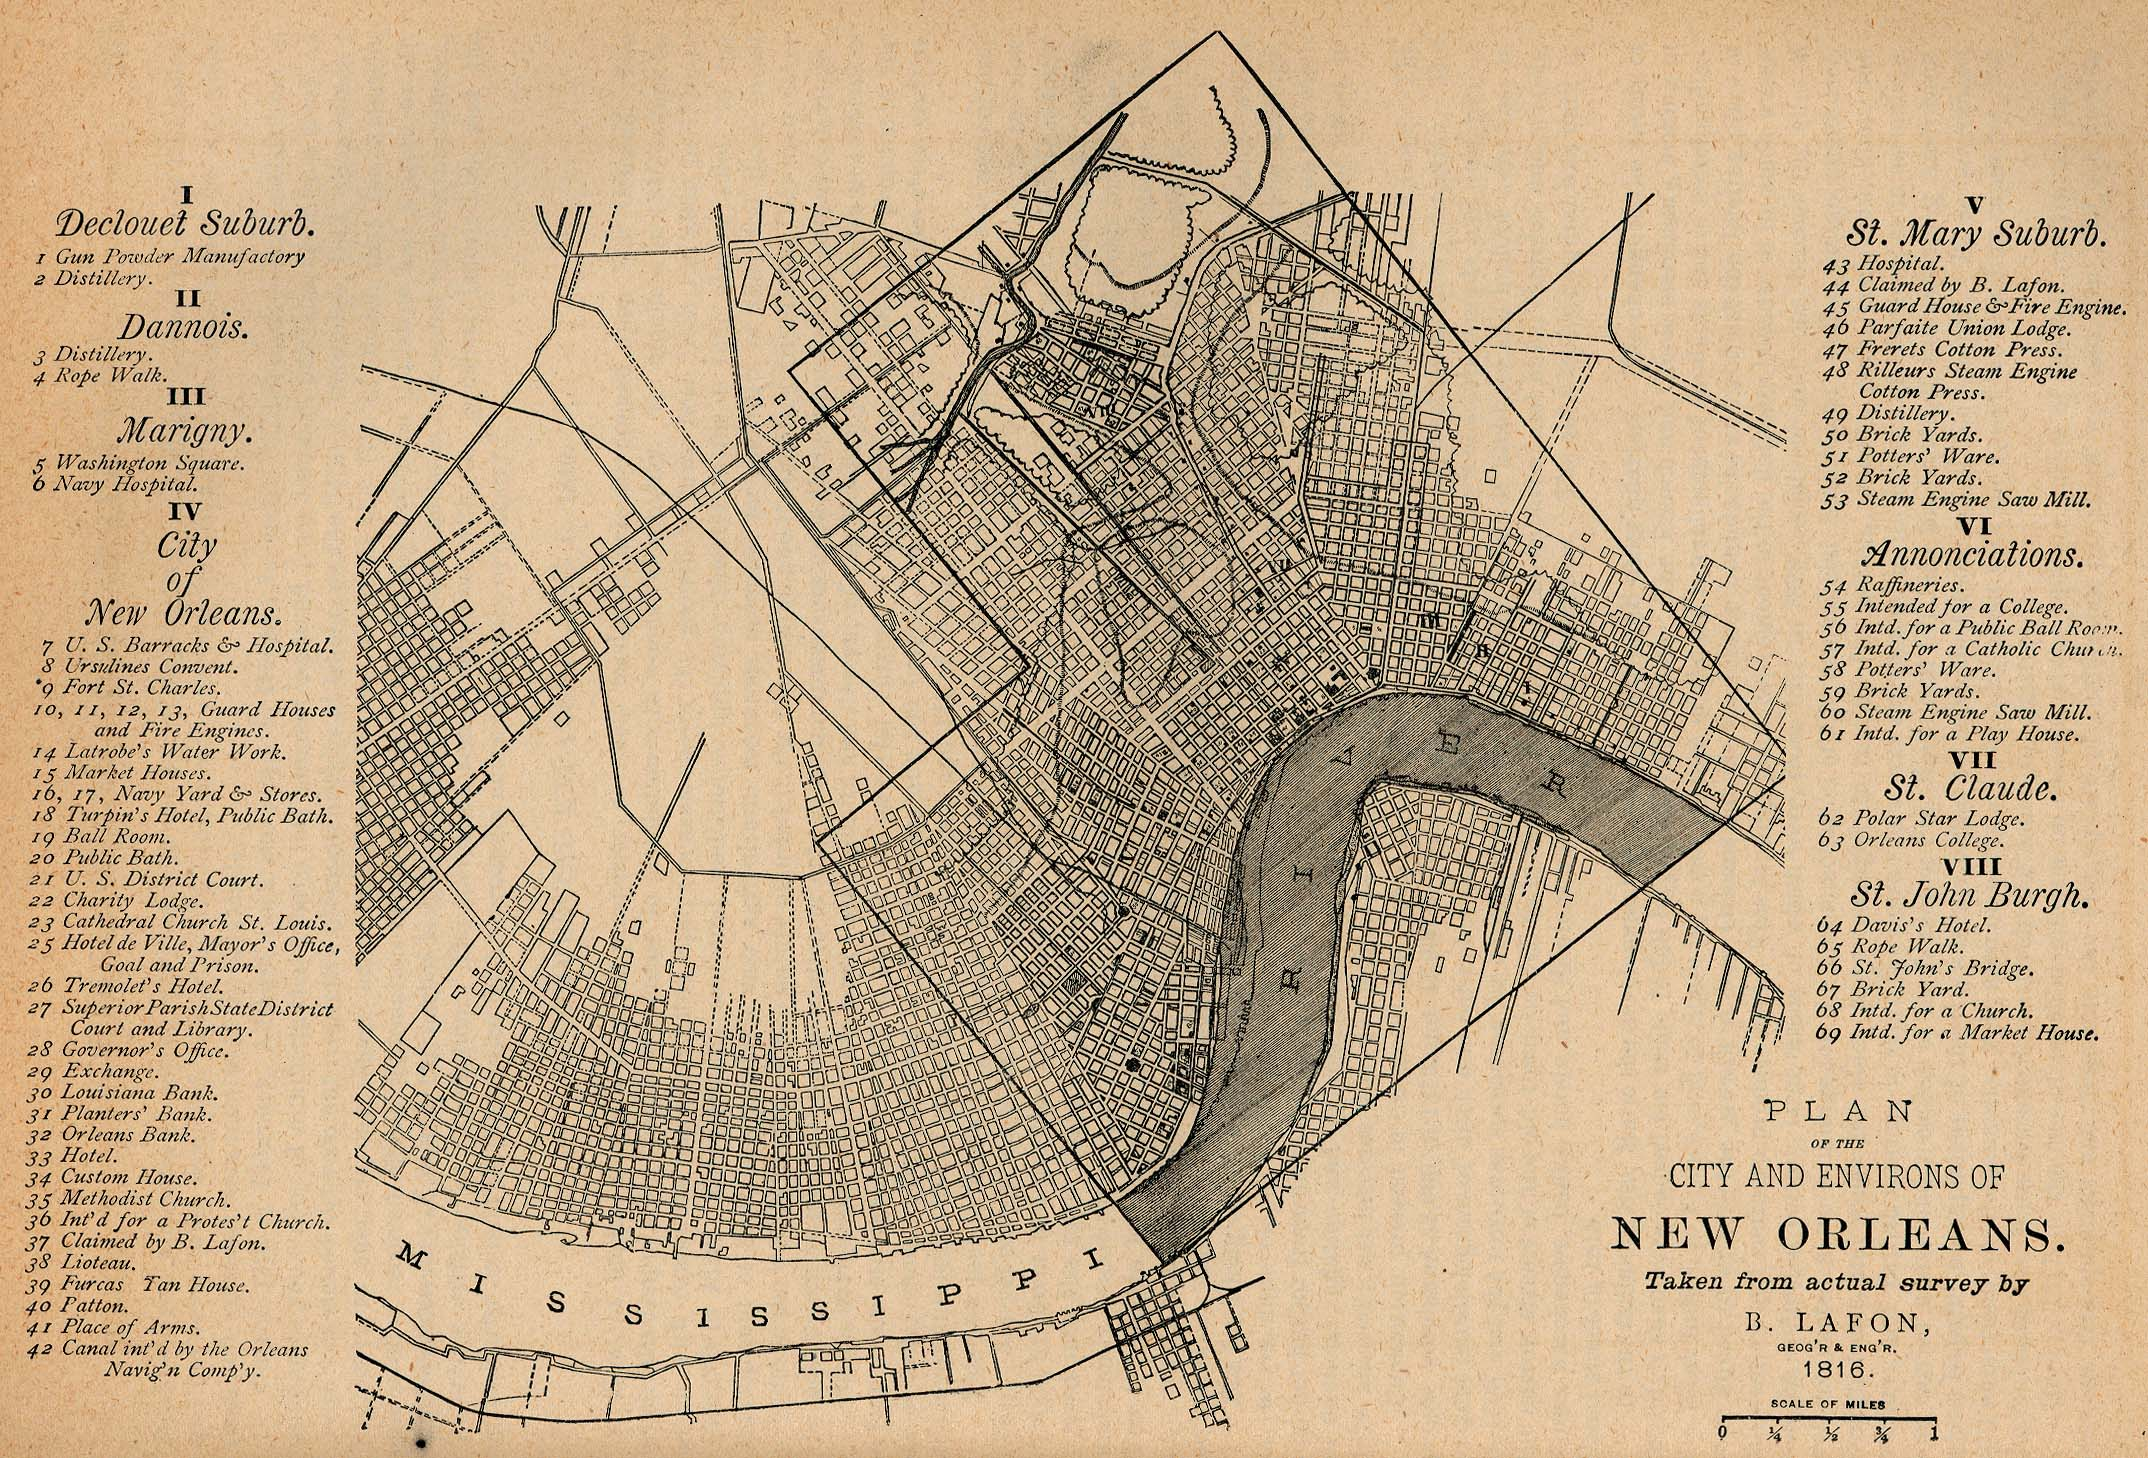 New Orleans City Map, Louisiana, United States 1816